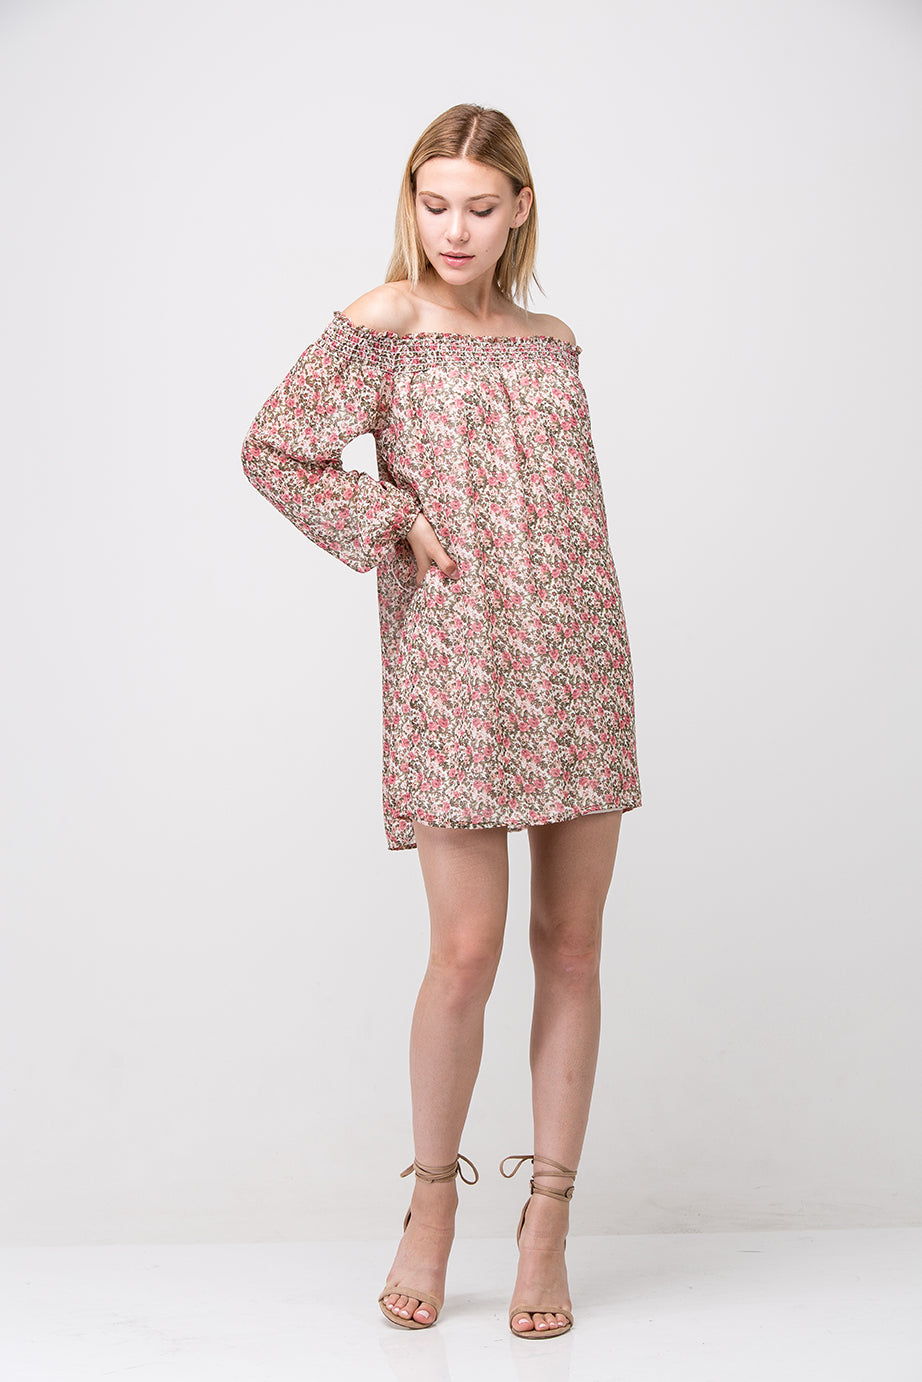 Crystal Dress - Multi